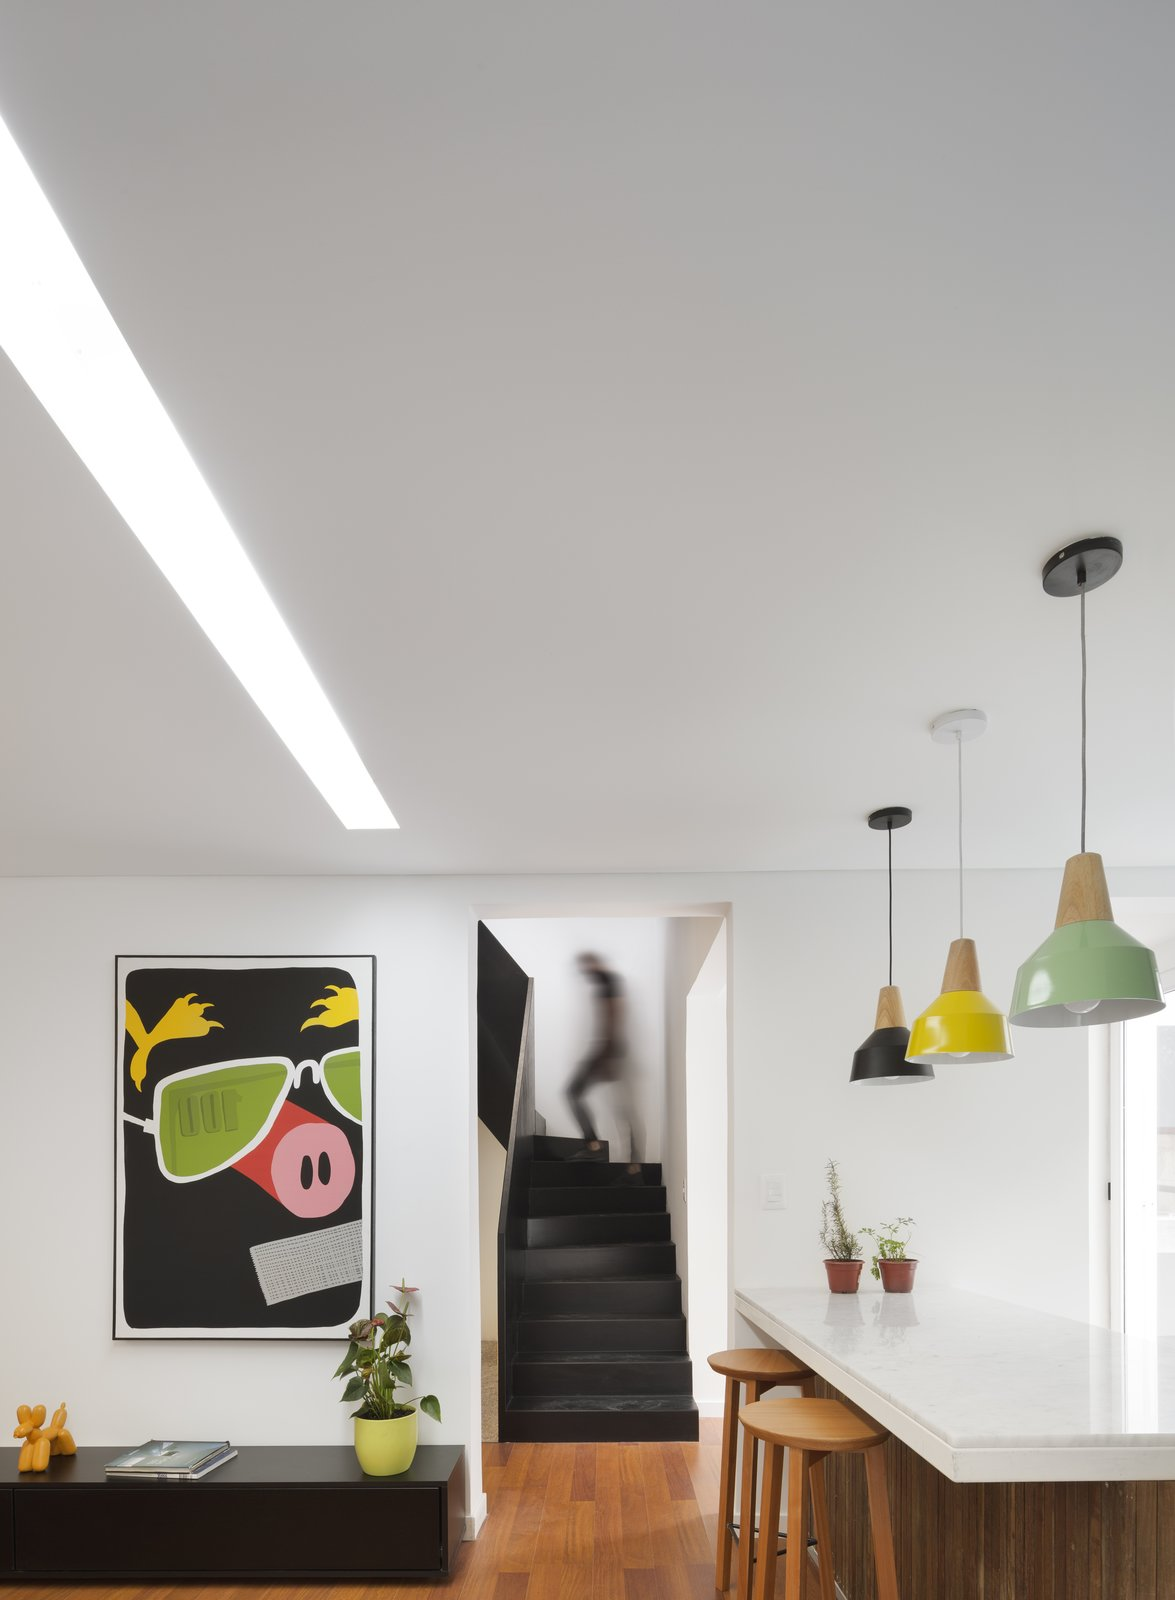 Interior Tagged: Kitchen, Marble Counter, Colorful Cabinet, Medium Hardwood Floor, Pendant Lighting, and Ceiling Lighting. Casa Plaza by mass arquitectos